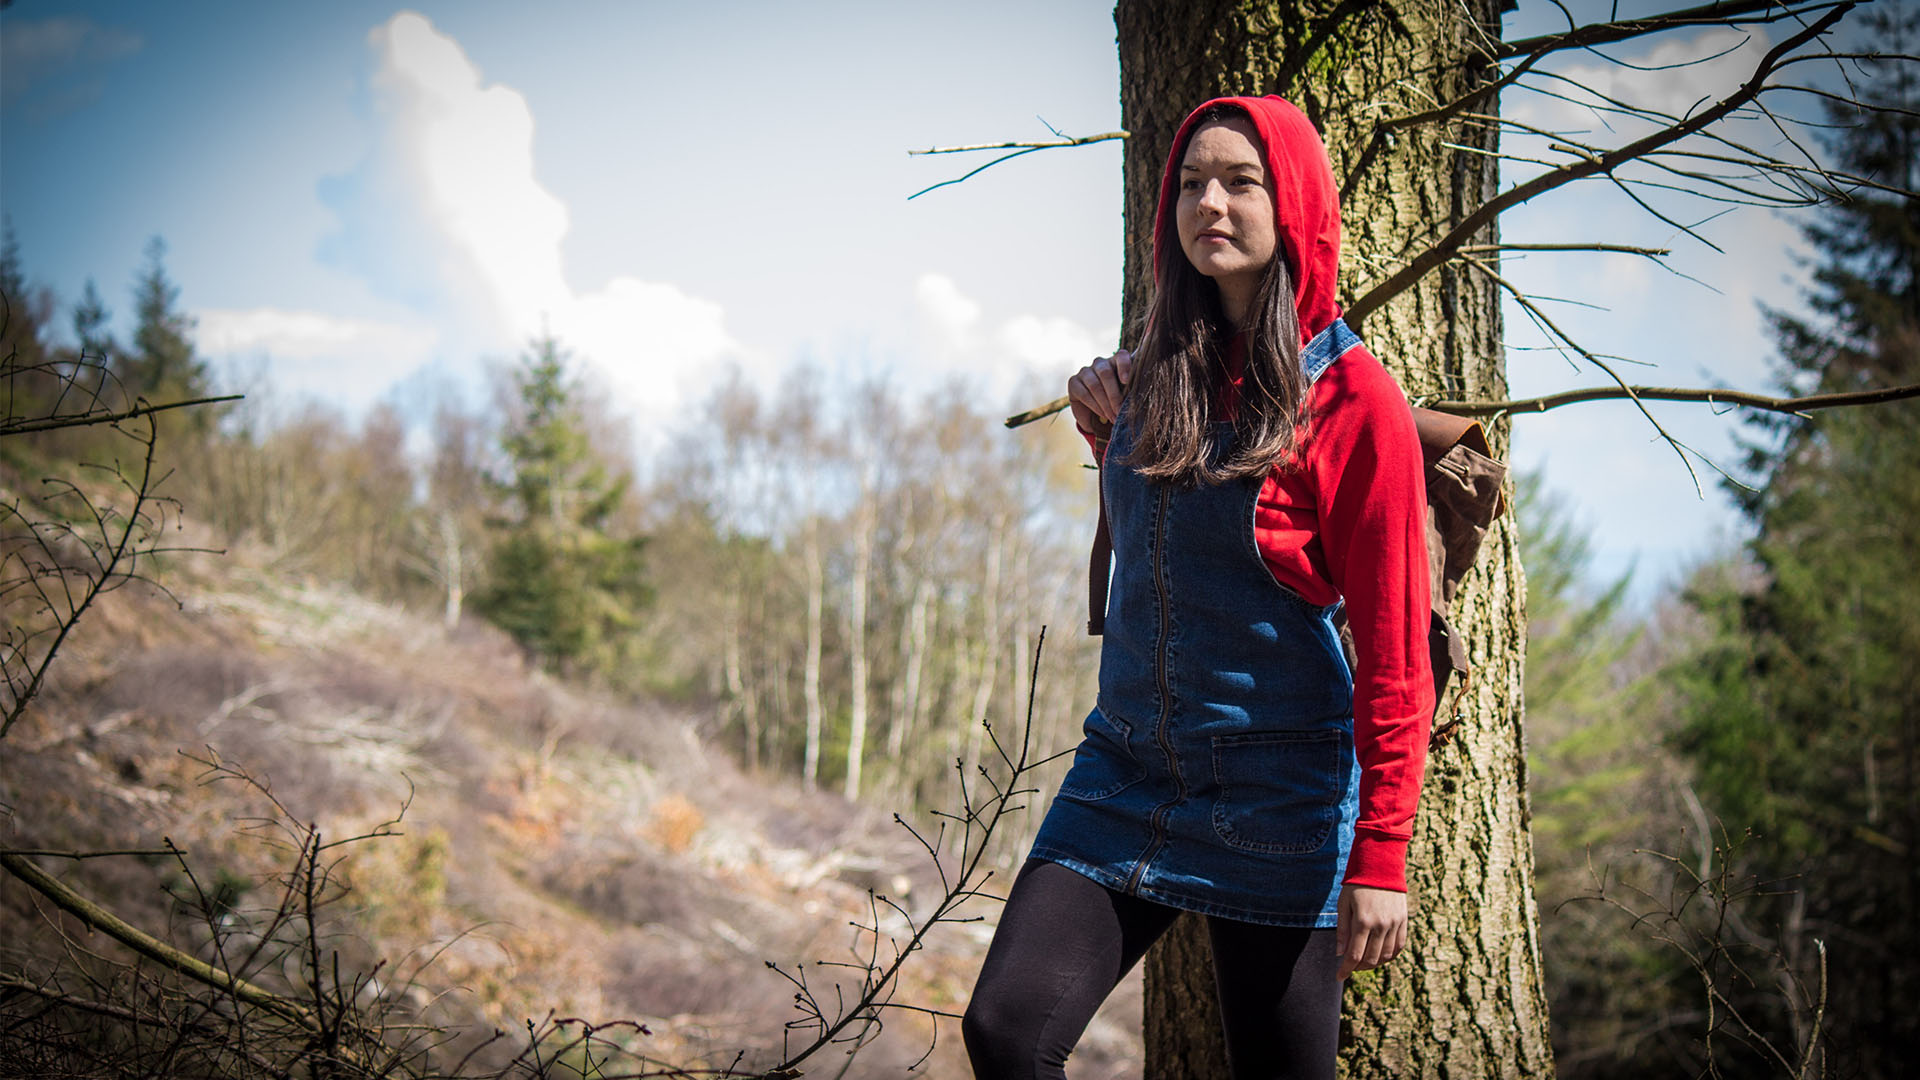 A modern-day Little Red Riding Hood is walking in the woods, wearing a blue jean overall dress with a red hoodie underneath, long brown hair peaking from under the hood. She's looking really determined.